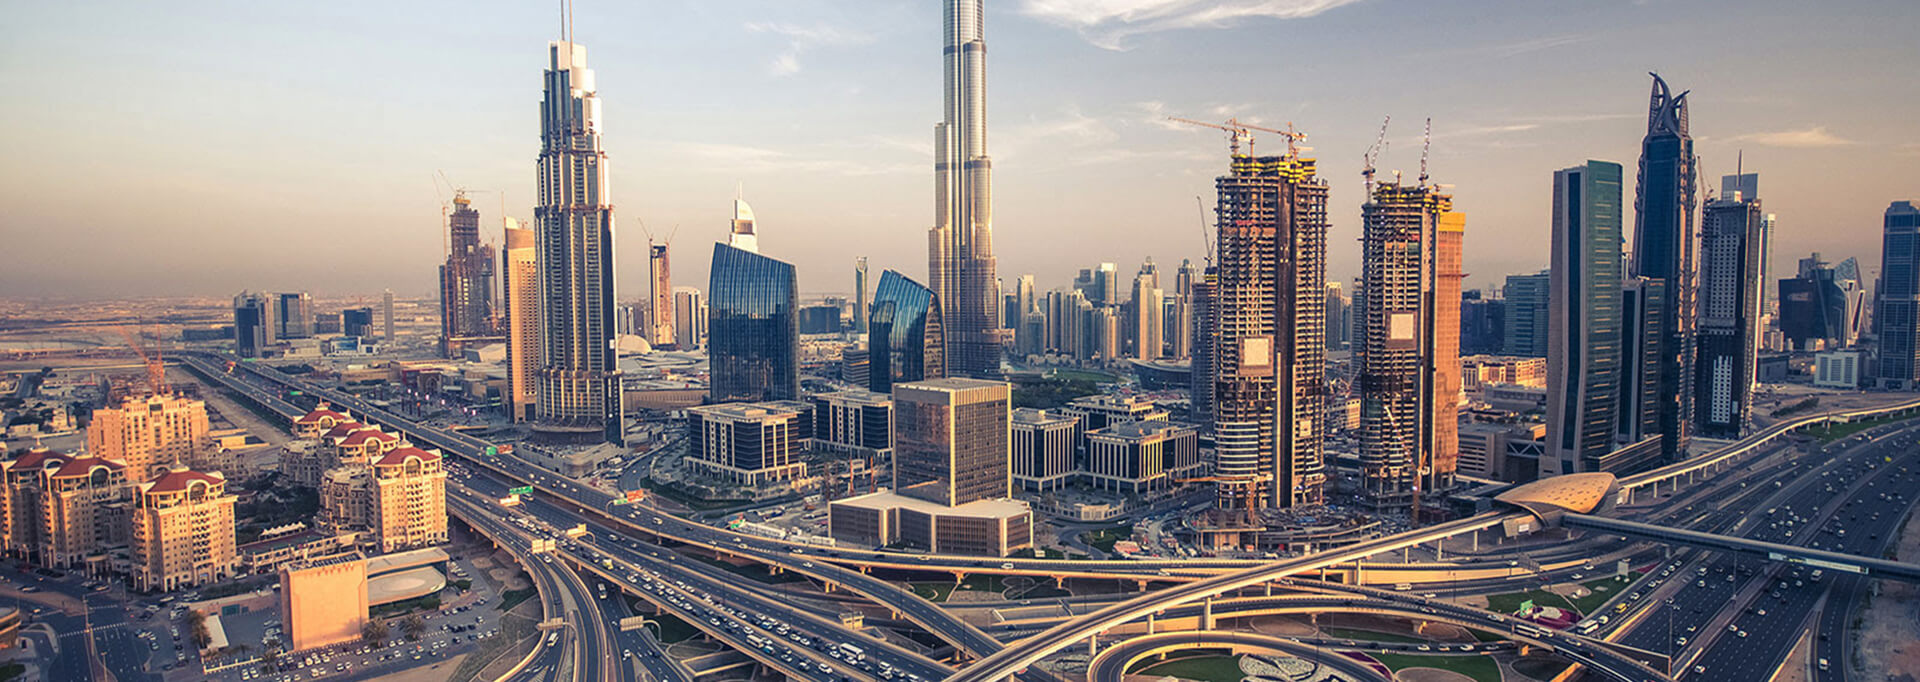 Why Dubai? 6 Reasons to Choose Dubai as your Career Destination